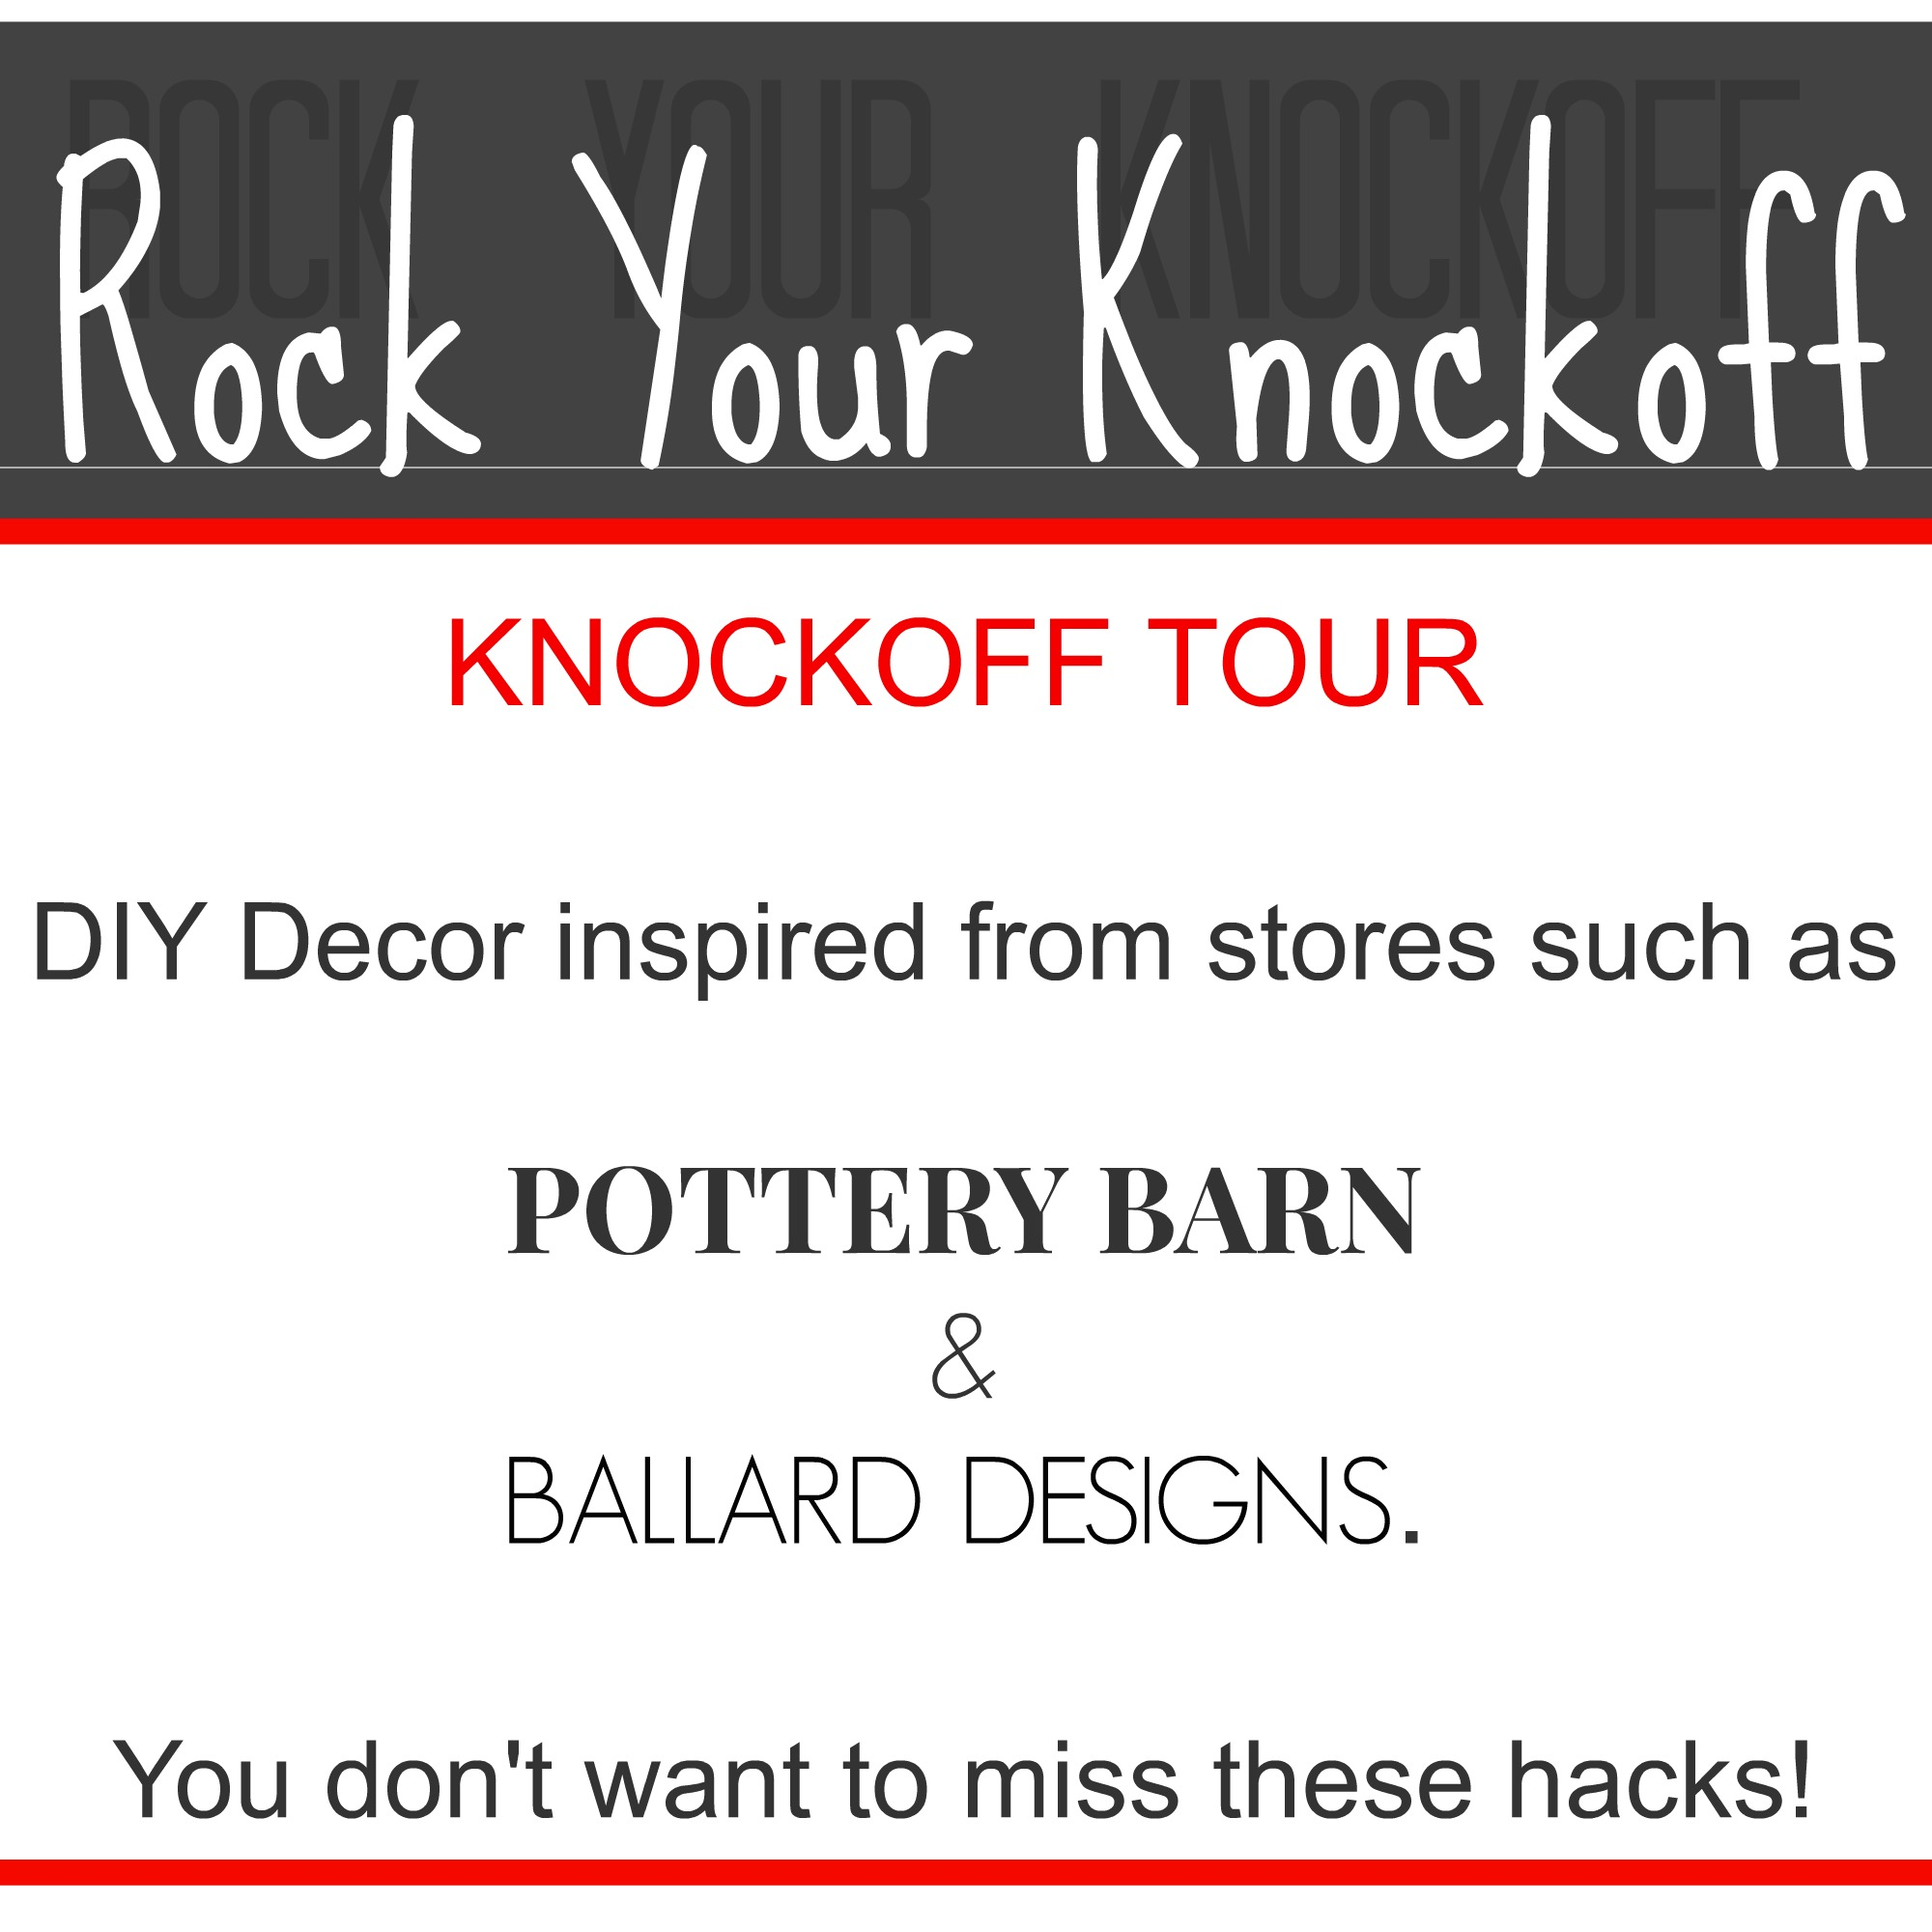 Ballard Designs & Pottery Barn Knockoffs